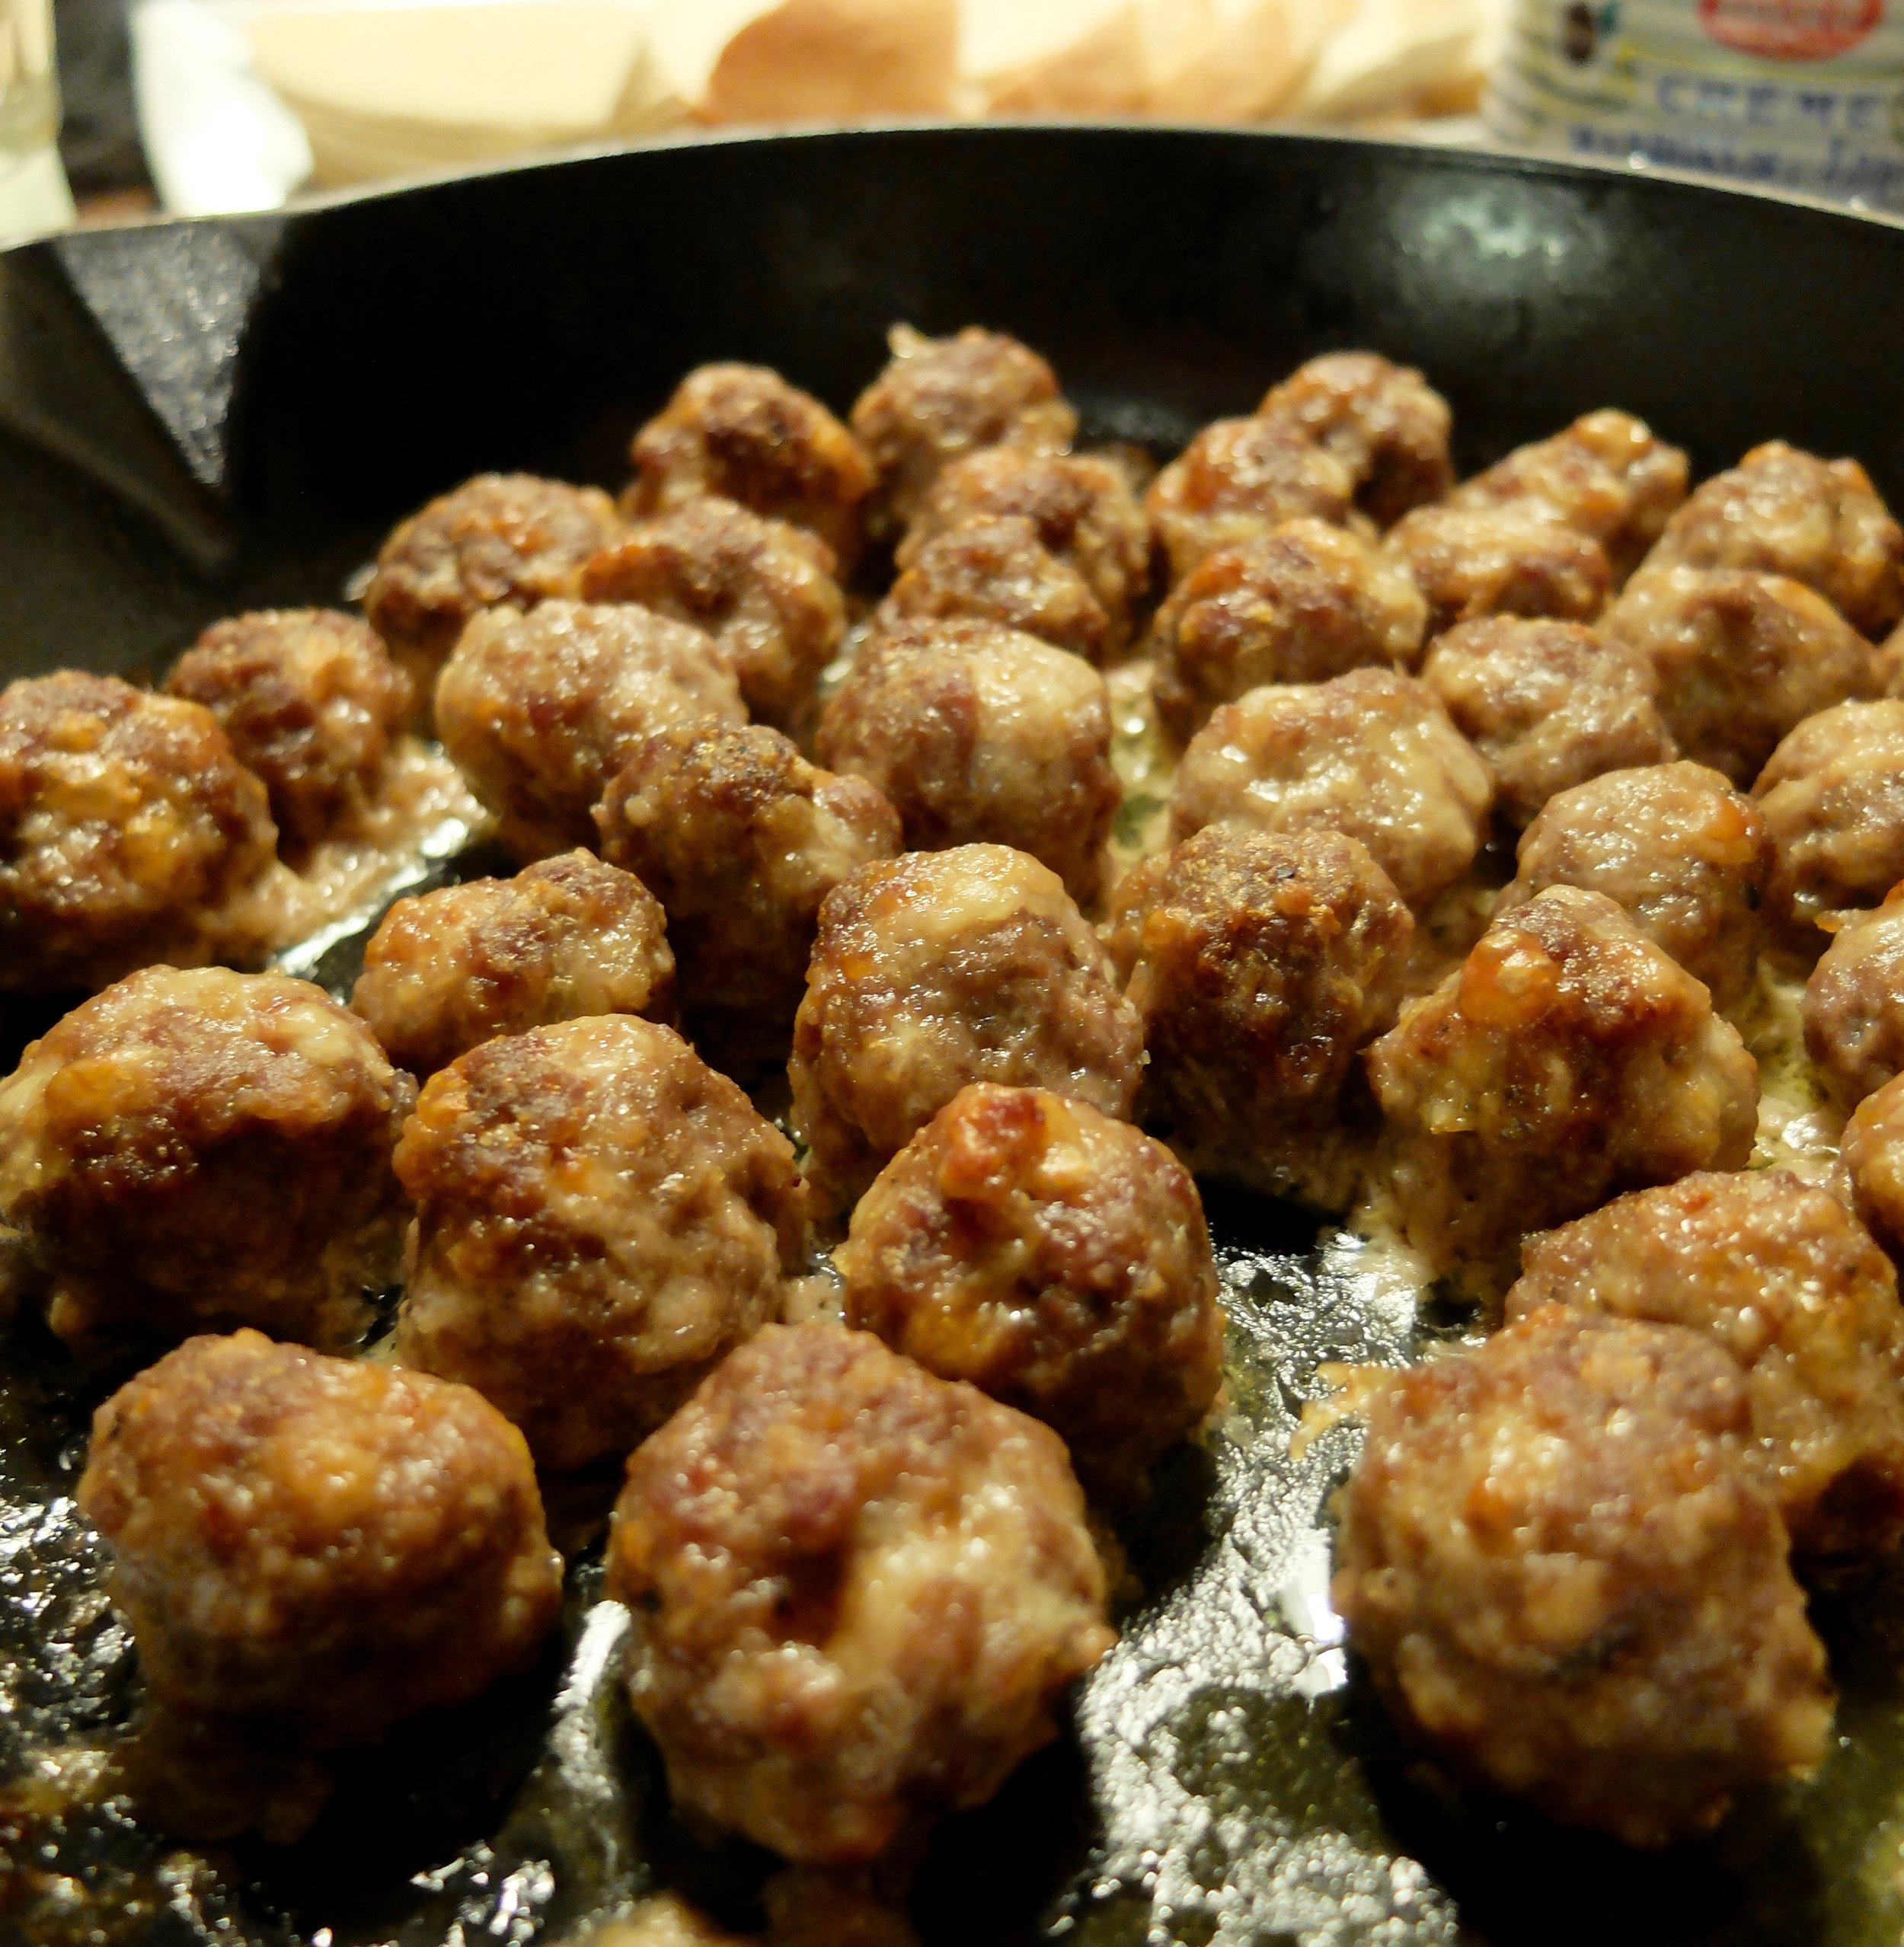 You'll have more meatballs than this- i just forgot to take a picture until they were already snacked on.